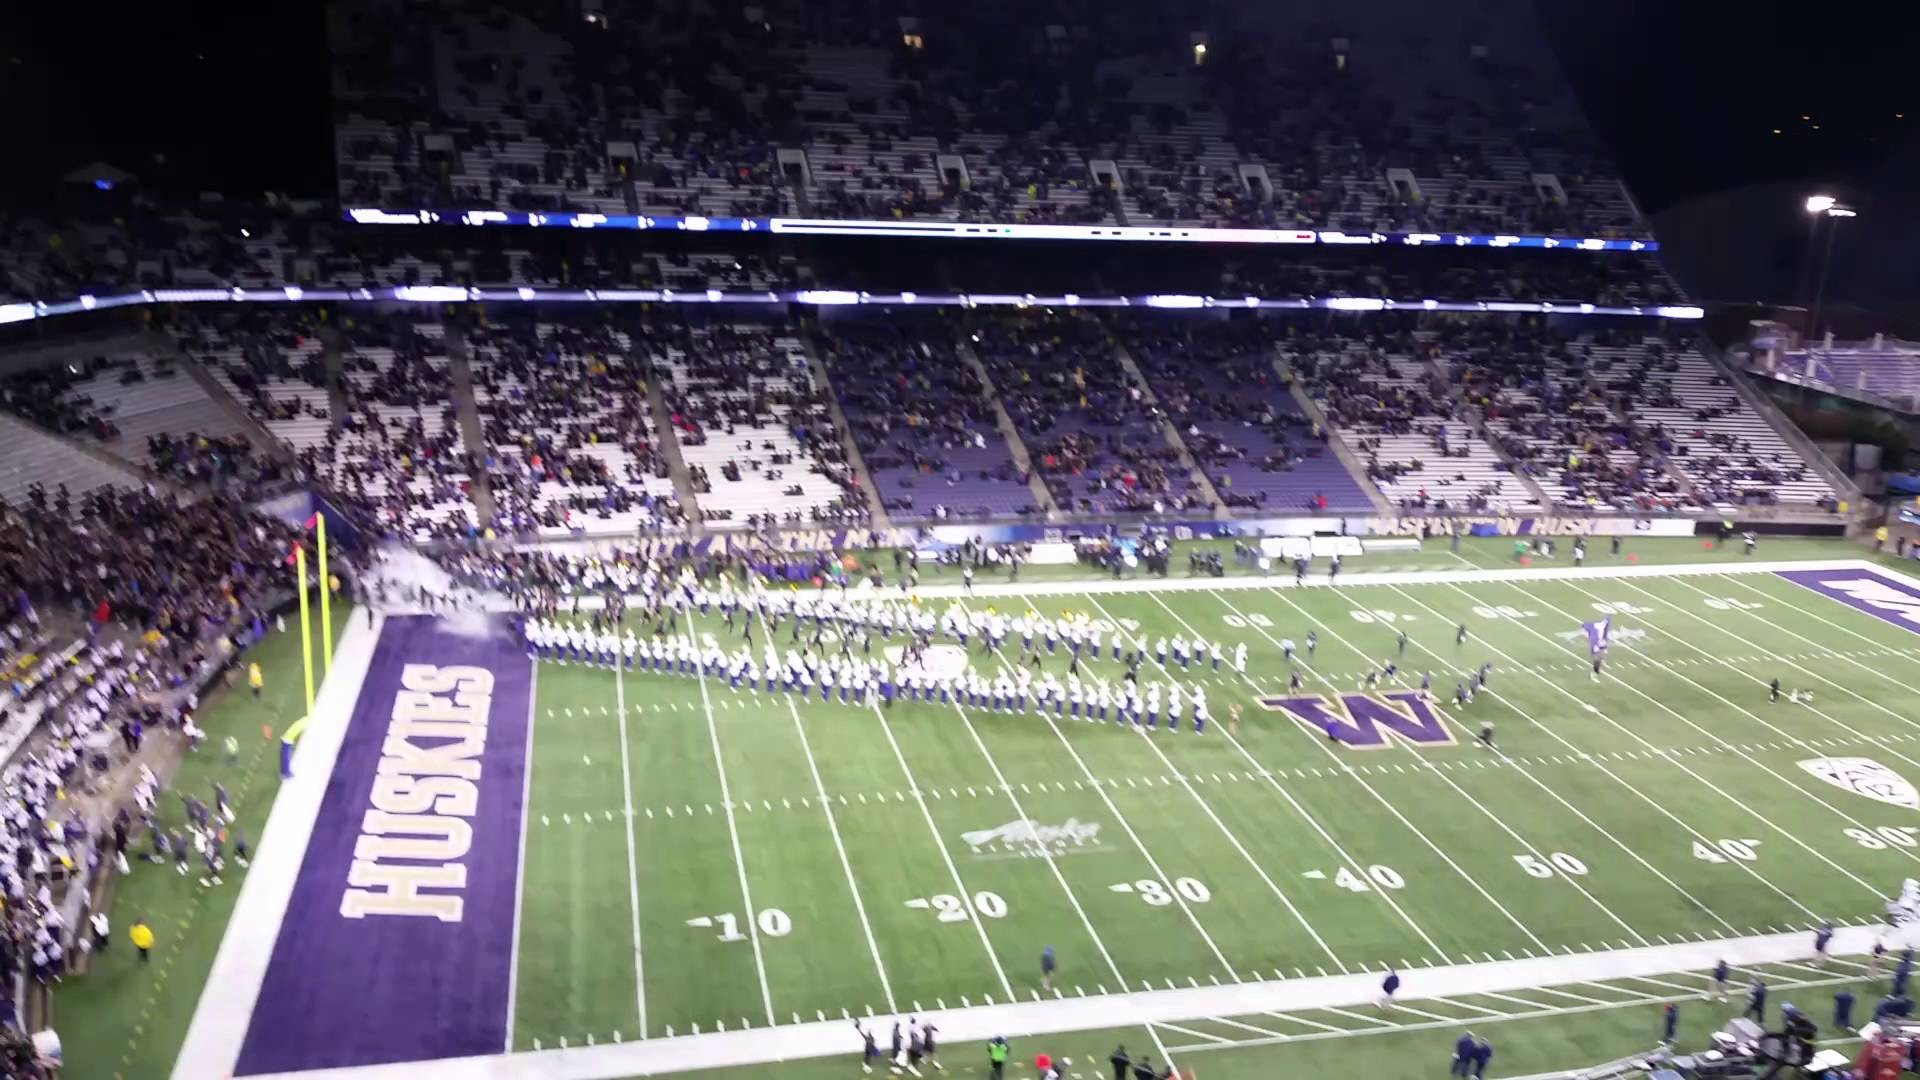 2015 University of Washington Football team Storming the field before the  game